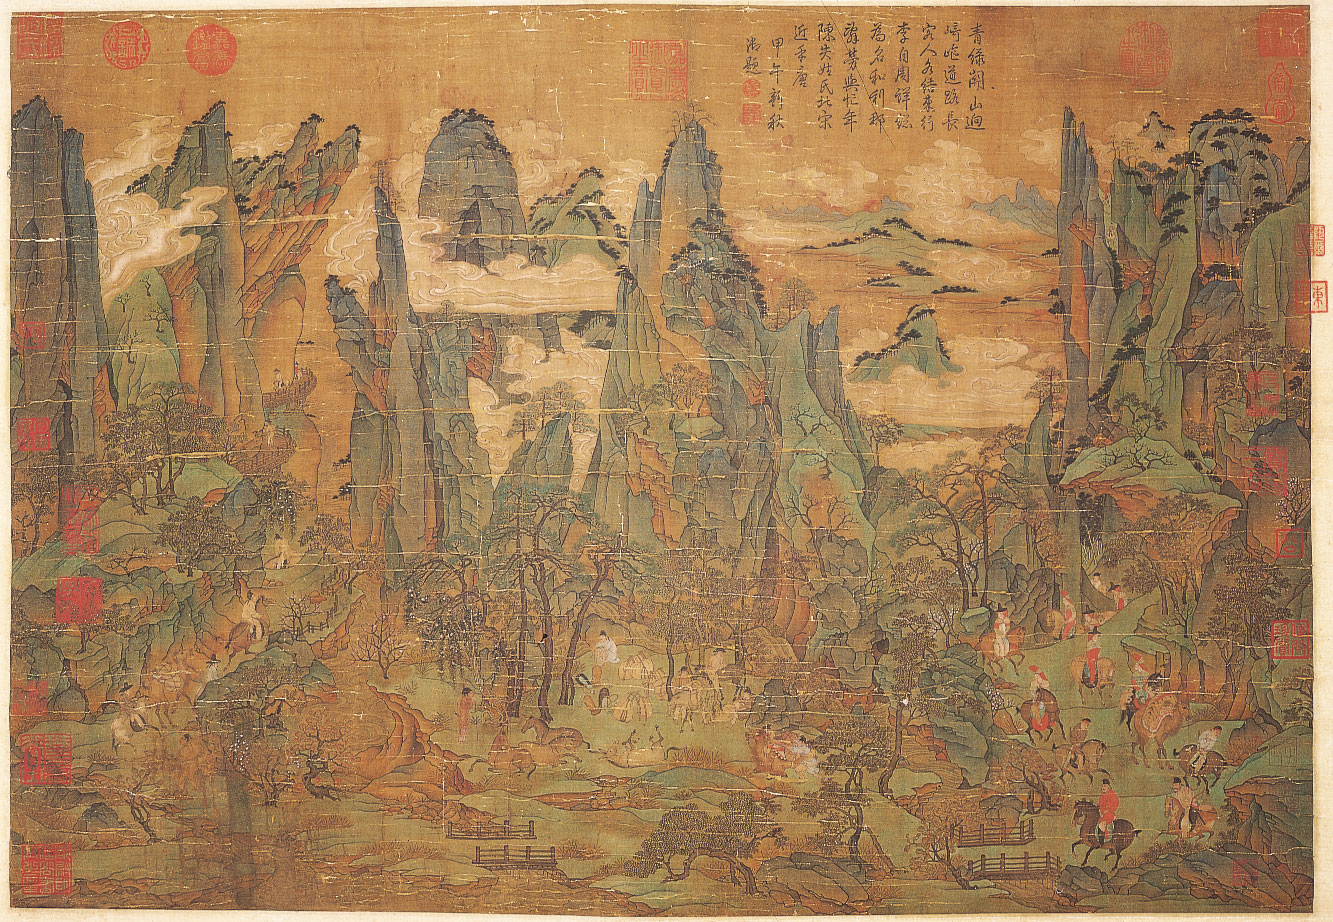 COMPARANDUM: Emperor Minghuang's Journey to Shu, early 8th century, Tang Empire (modern China)